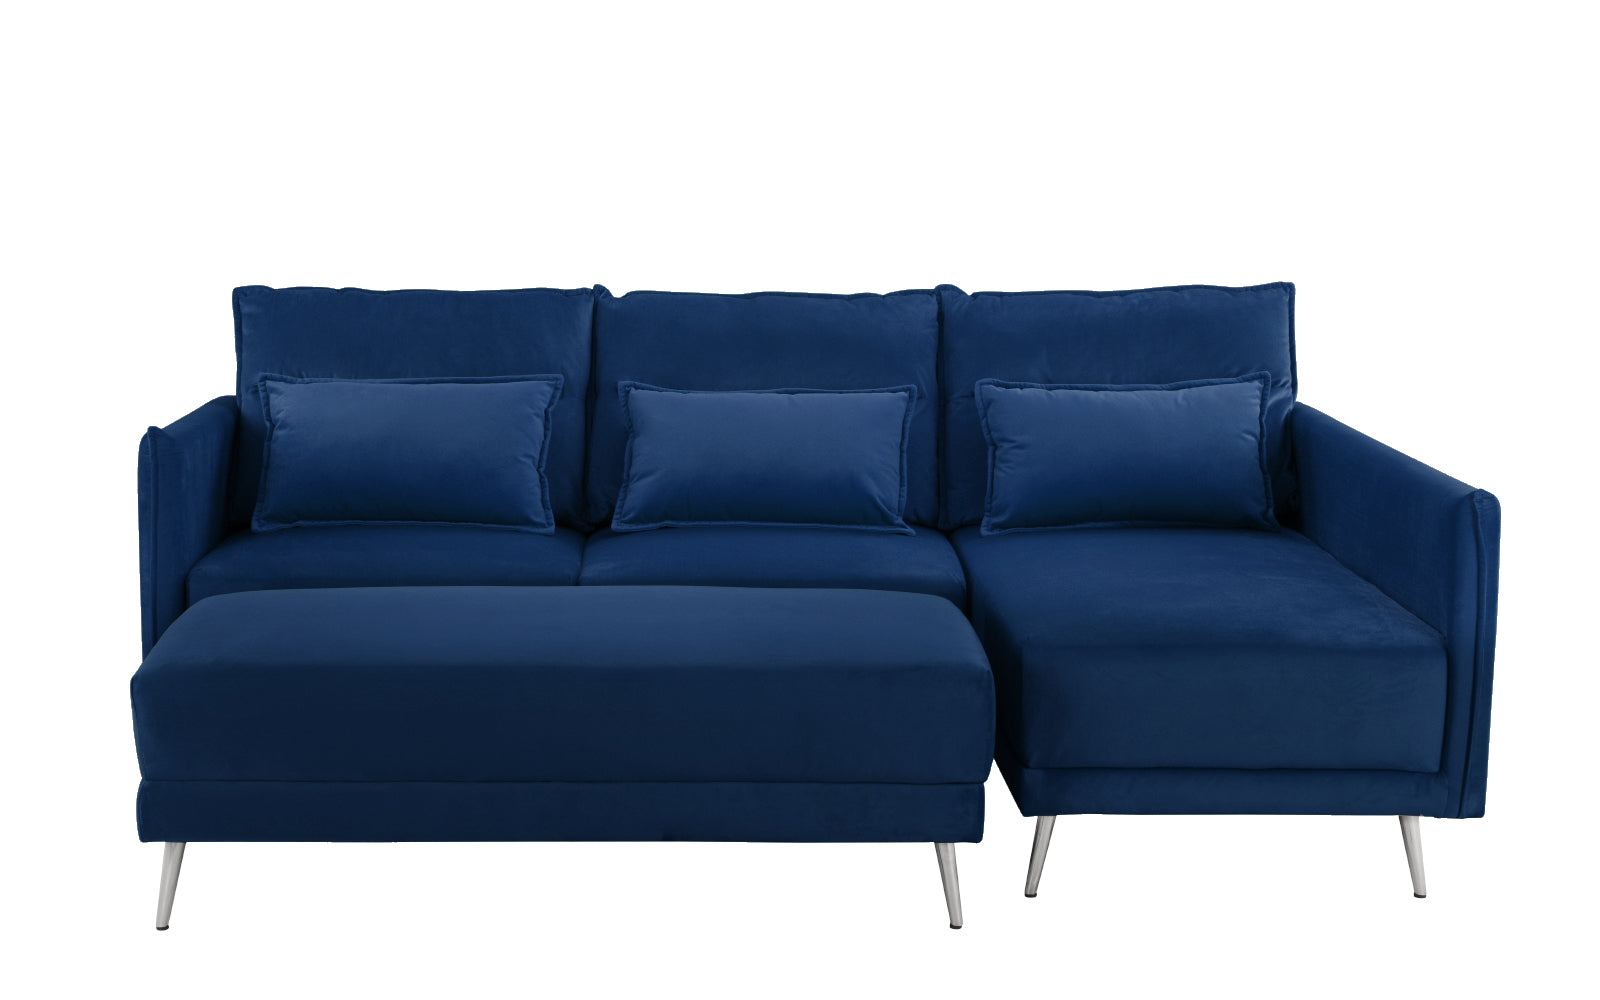 Mona velvet sectional sofa with large ottoman